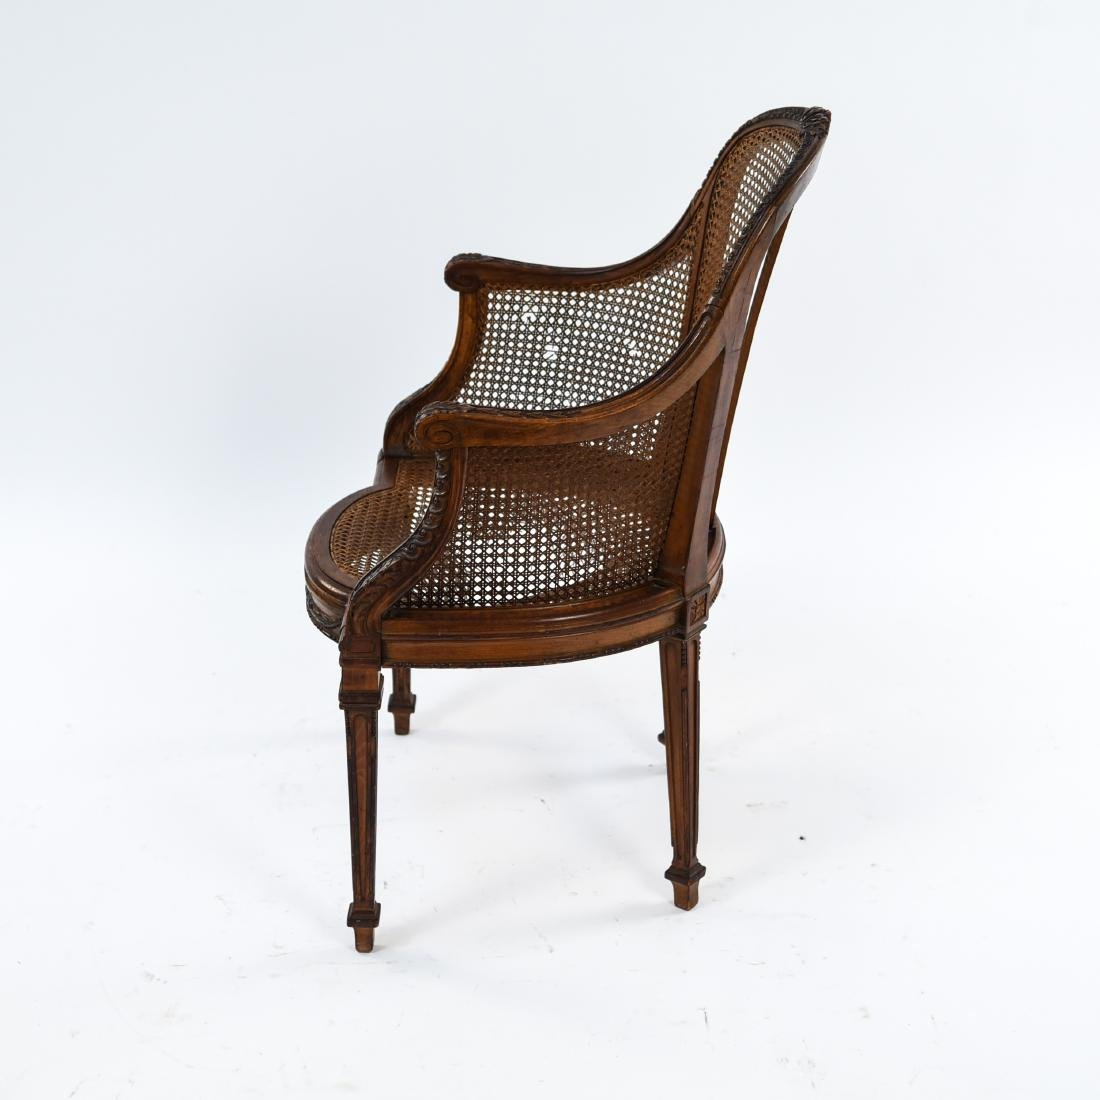 ANTIQUE FRENCH CANED CHAIR - 10